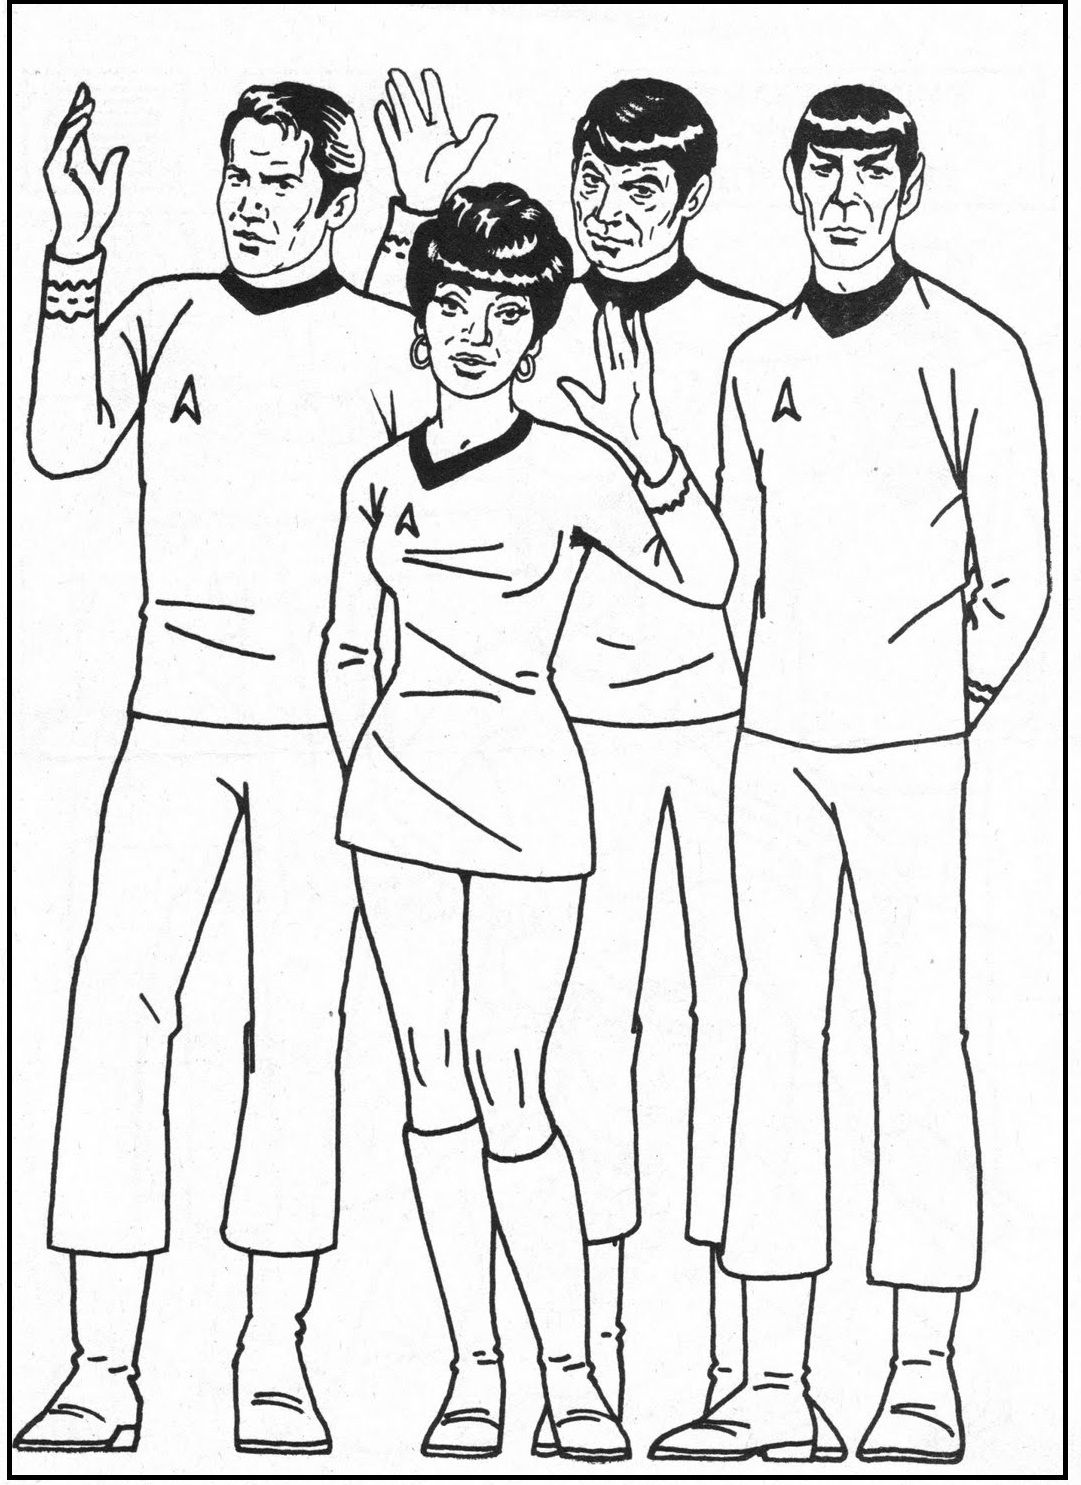 Star Trek Group Coloring Picture For Kids Star Trek Printables